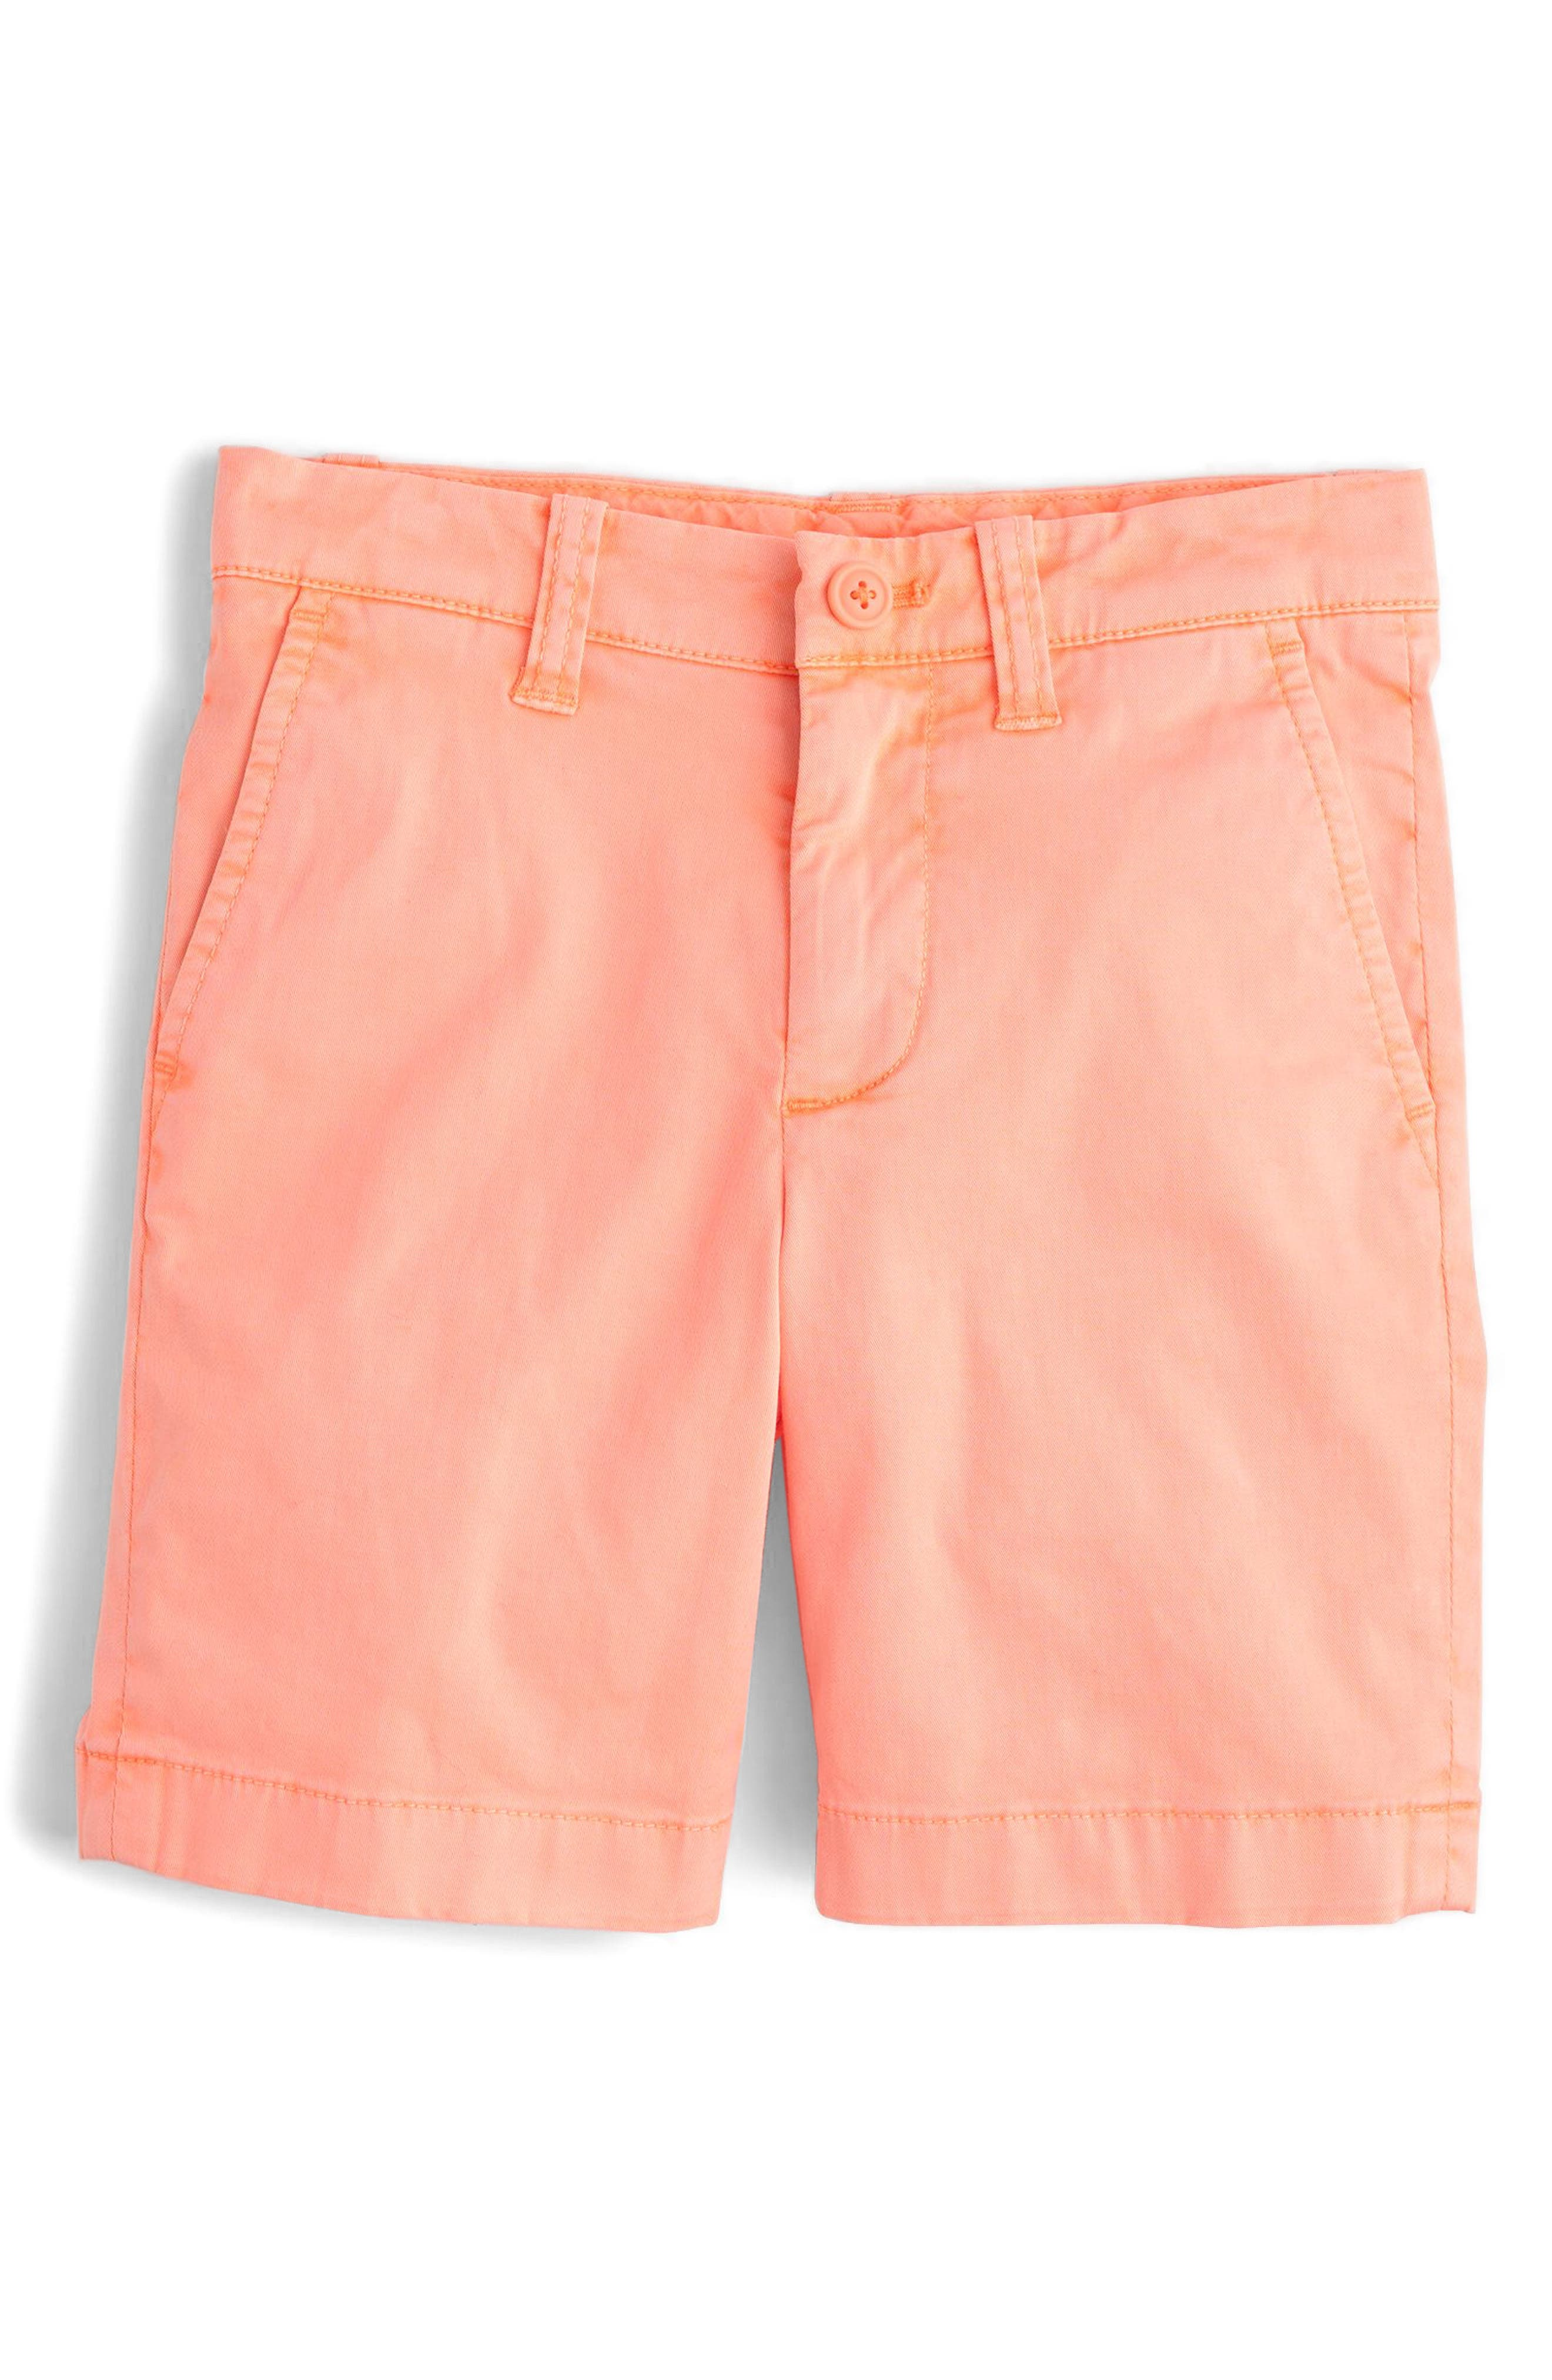 crewcuts by J.Crew Stanton Chino Shorts (Toddler Boys, Little Boys & Big Boys)